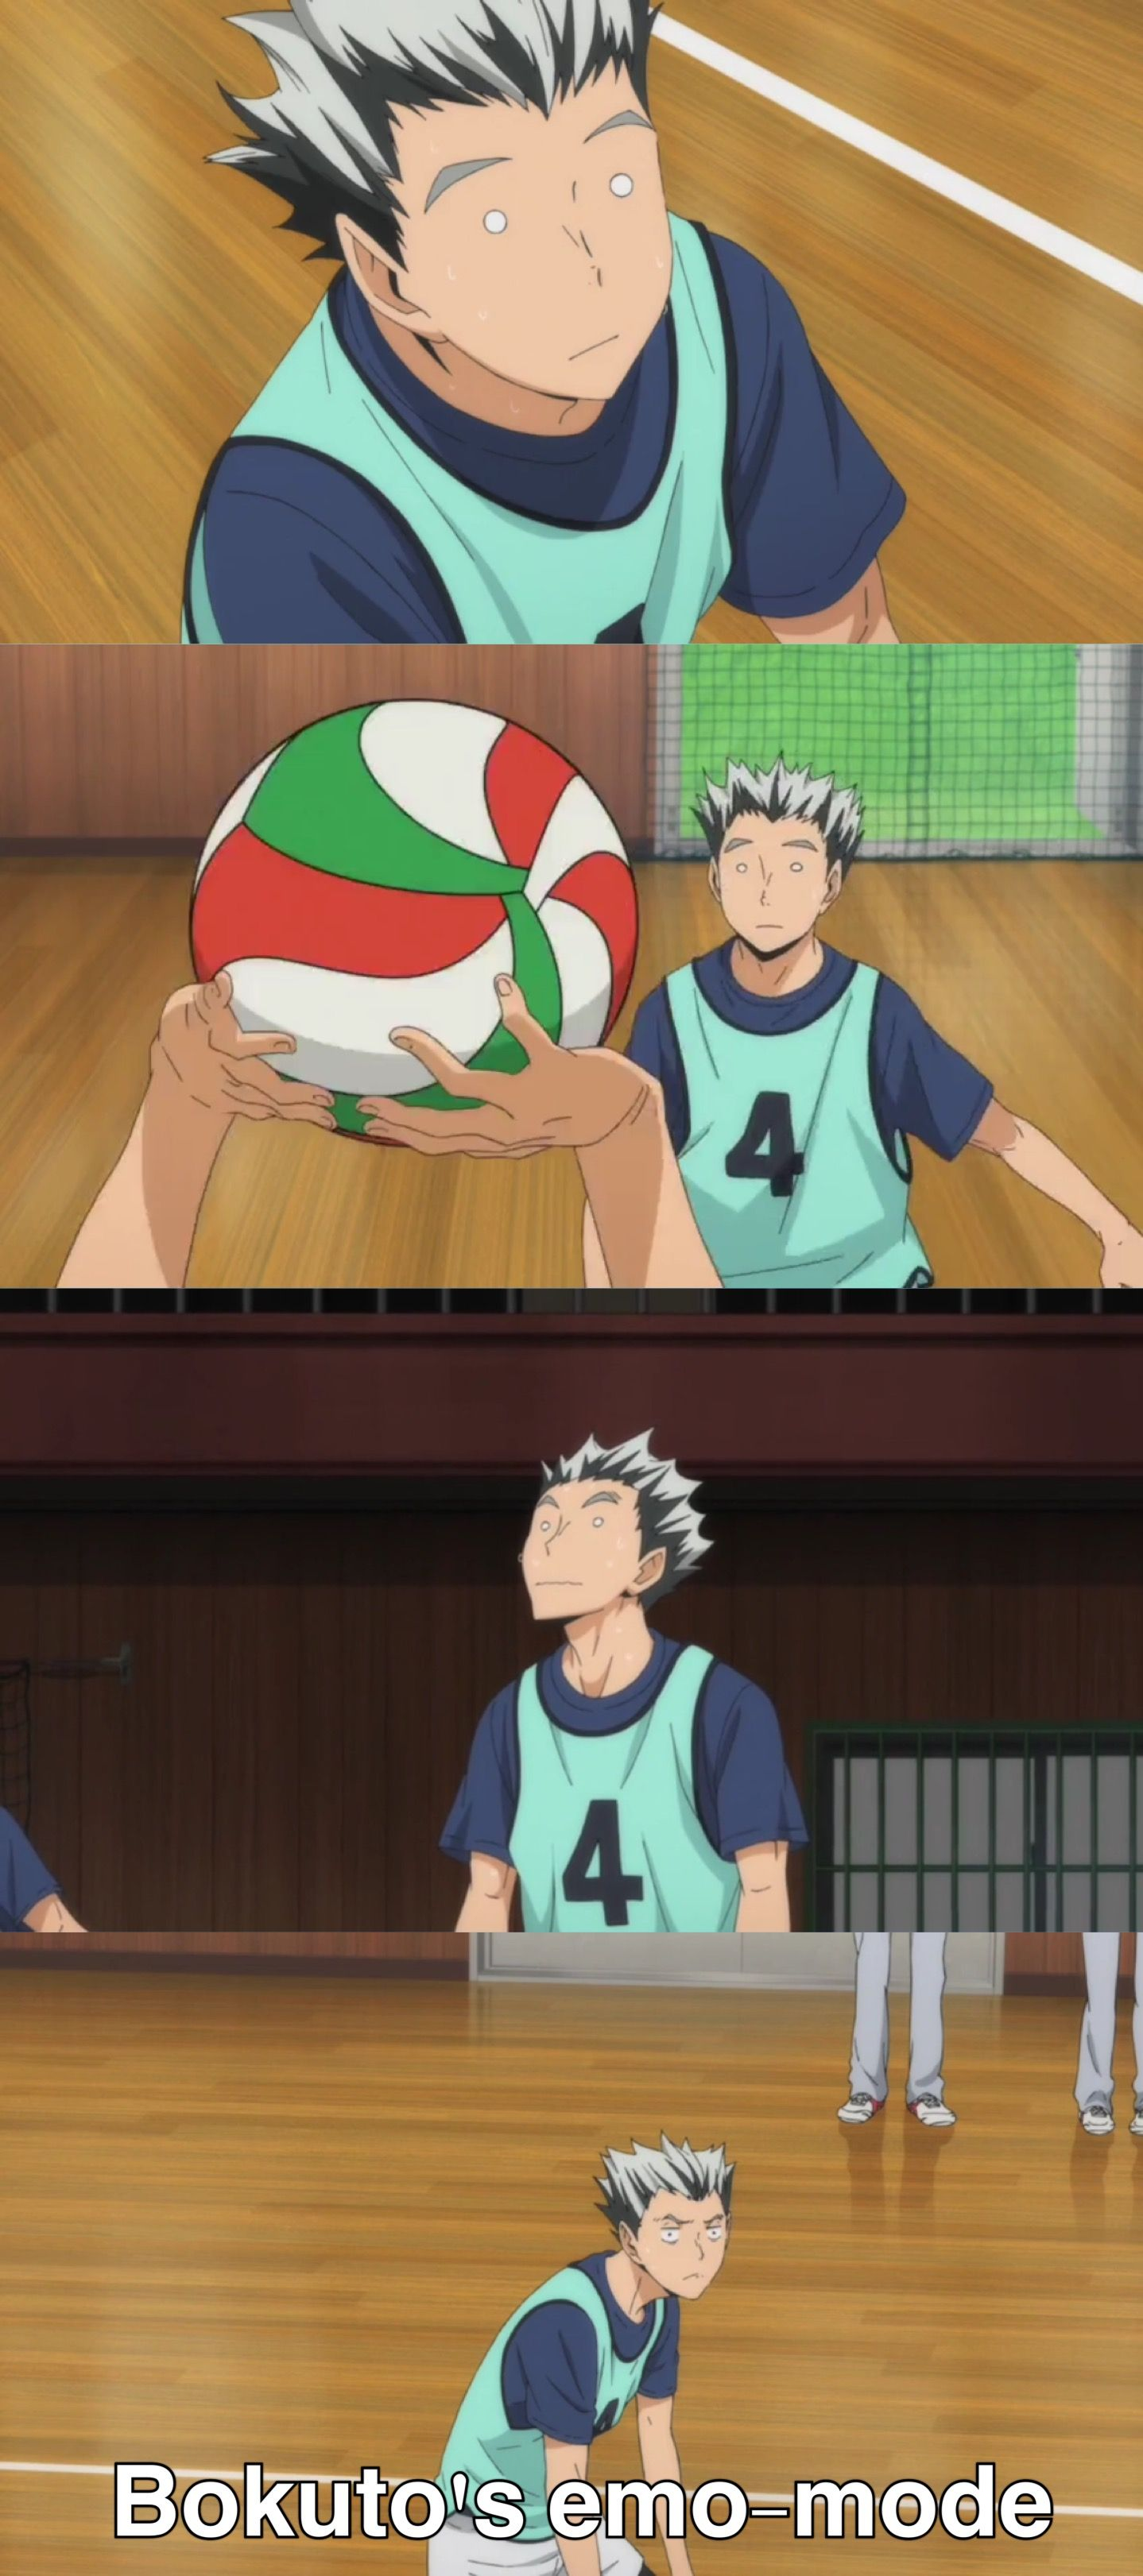 Bokuto: lemme get a spike in    why aren't you spiking to me